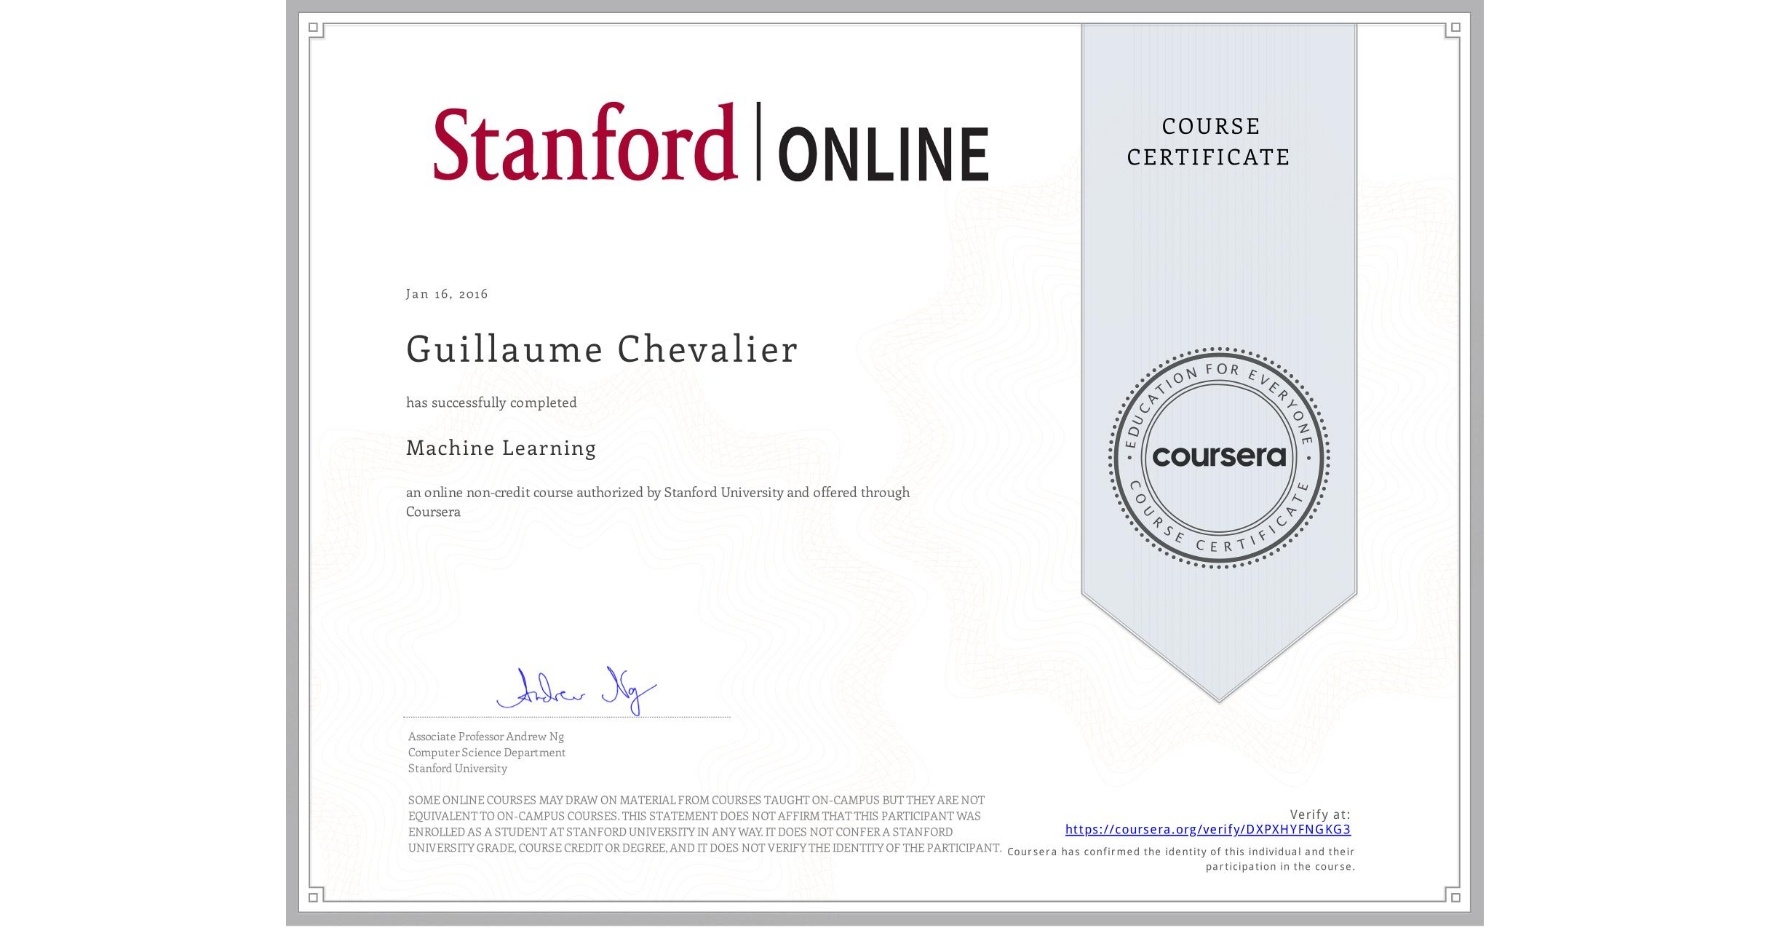 View certificate for Guillaume Chevalier, Machine Learning, an online non-credit course authorized by Stanford University and offered through Coursera